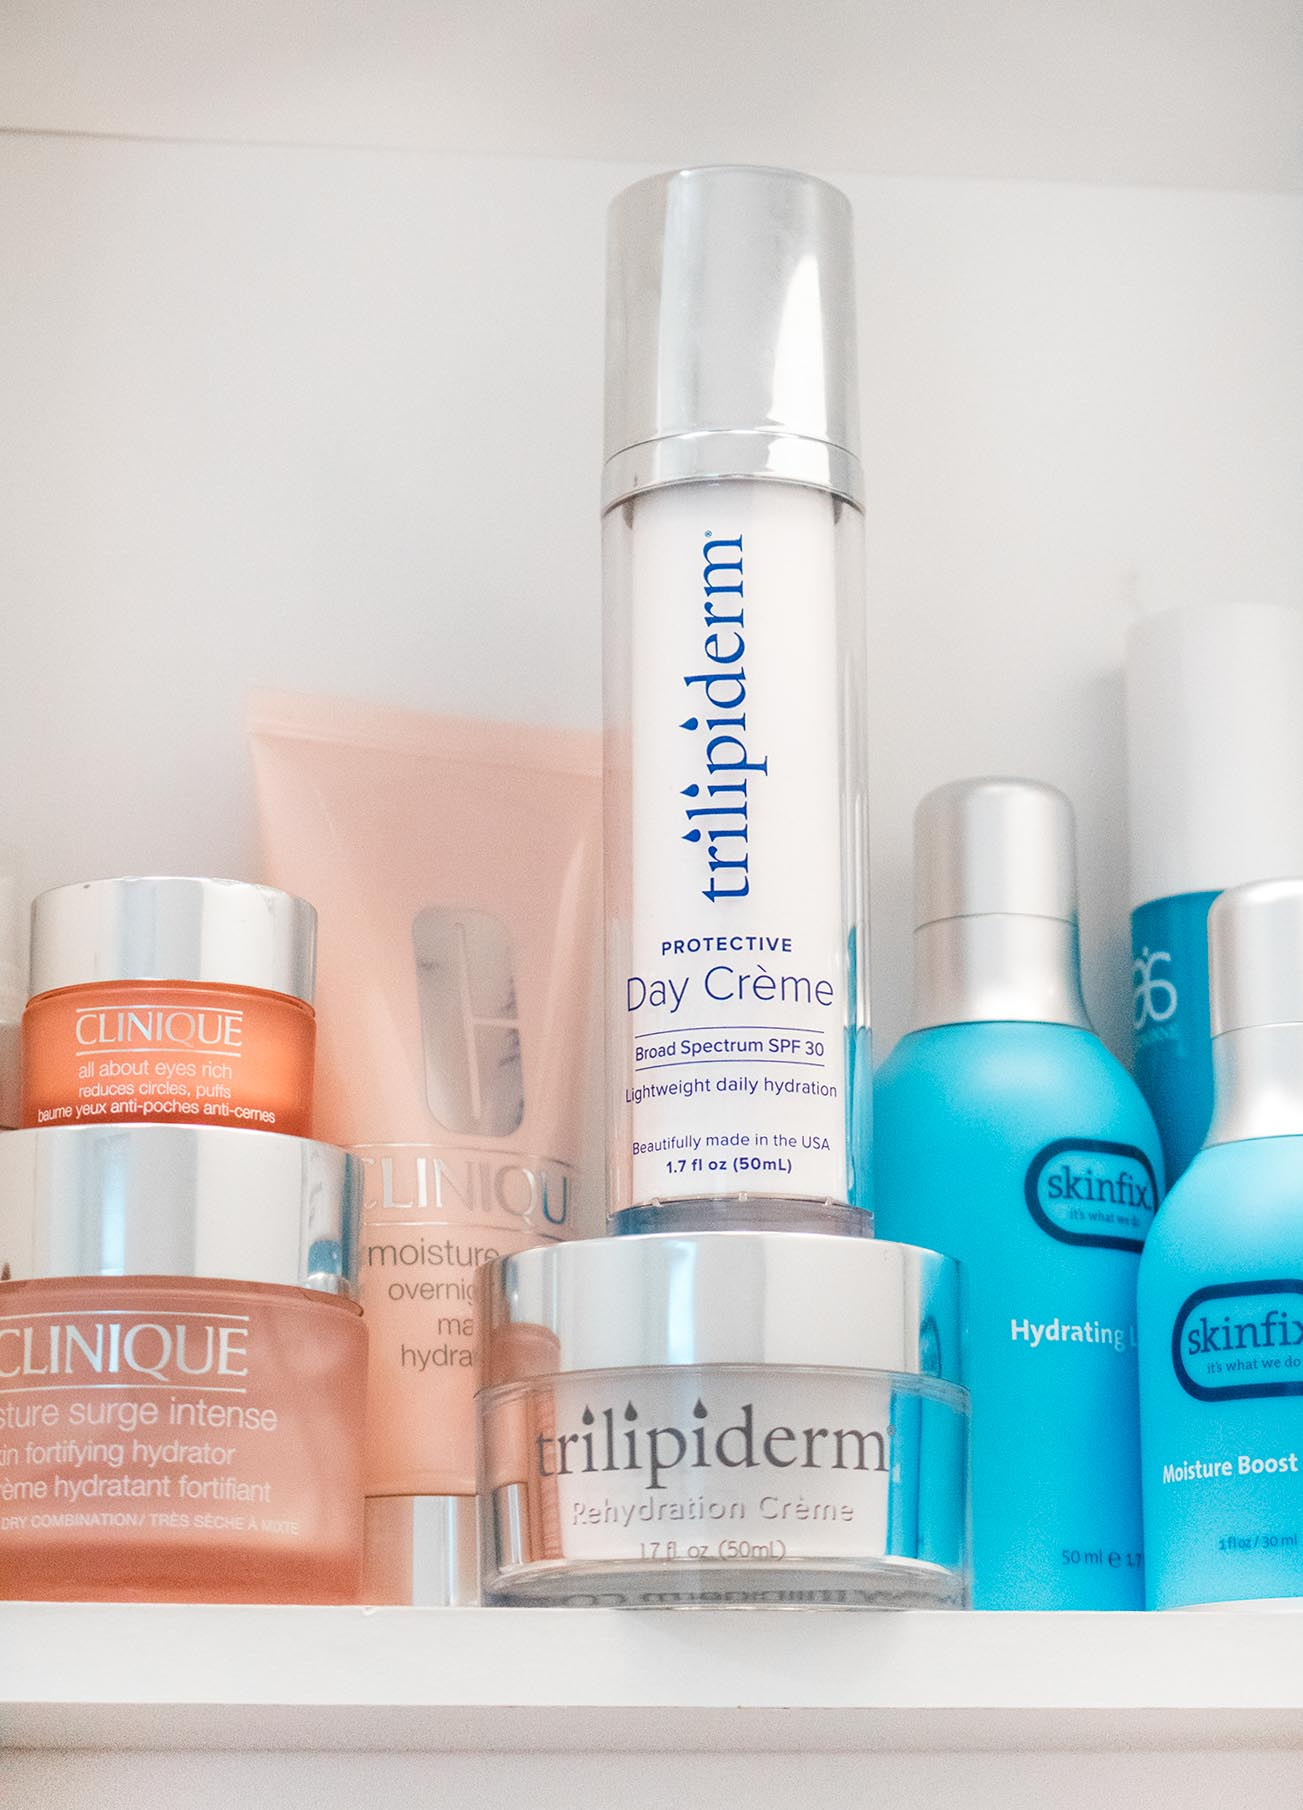 Trilipiderm skincare products